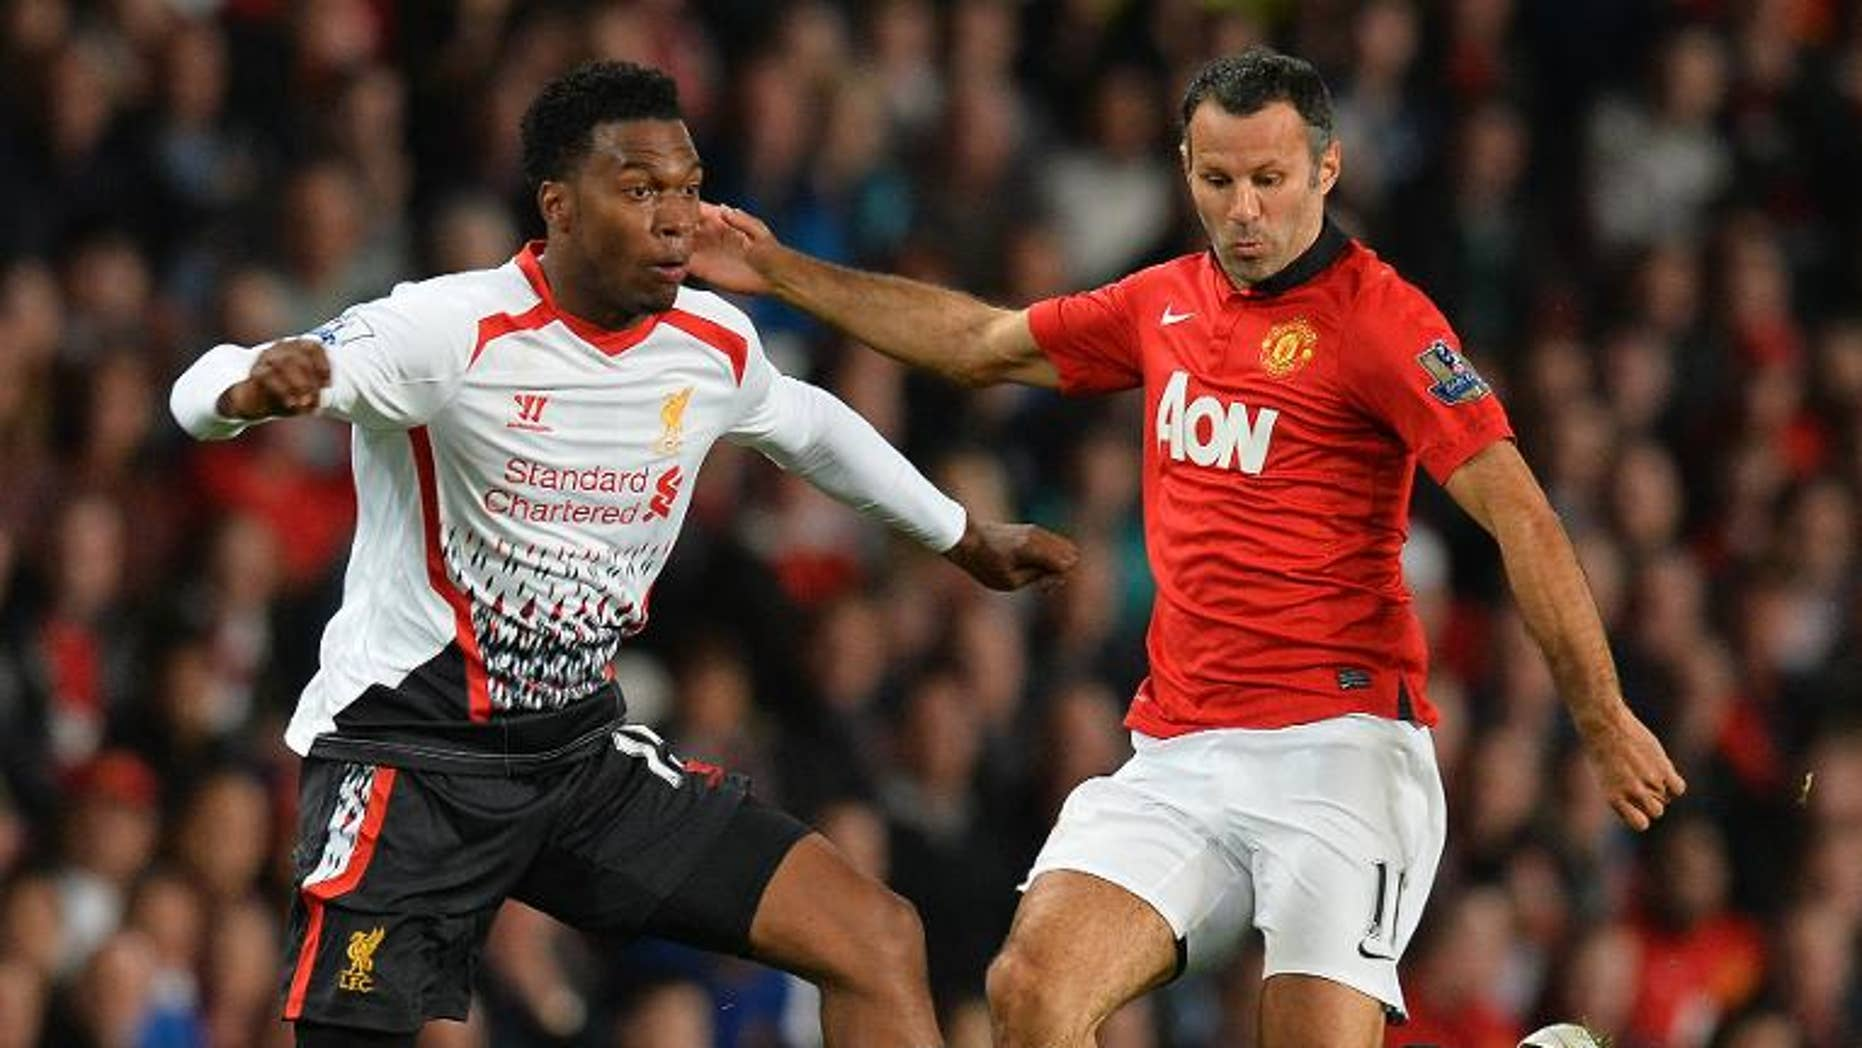 Manchester United's Ryan Giggs (right) vies with Liverpool's Daniel Sturridge at Old Trafford in Manchester on September 25, 2013